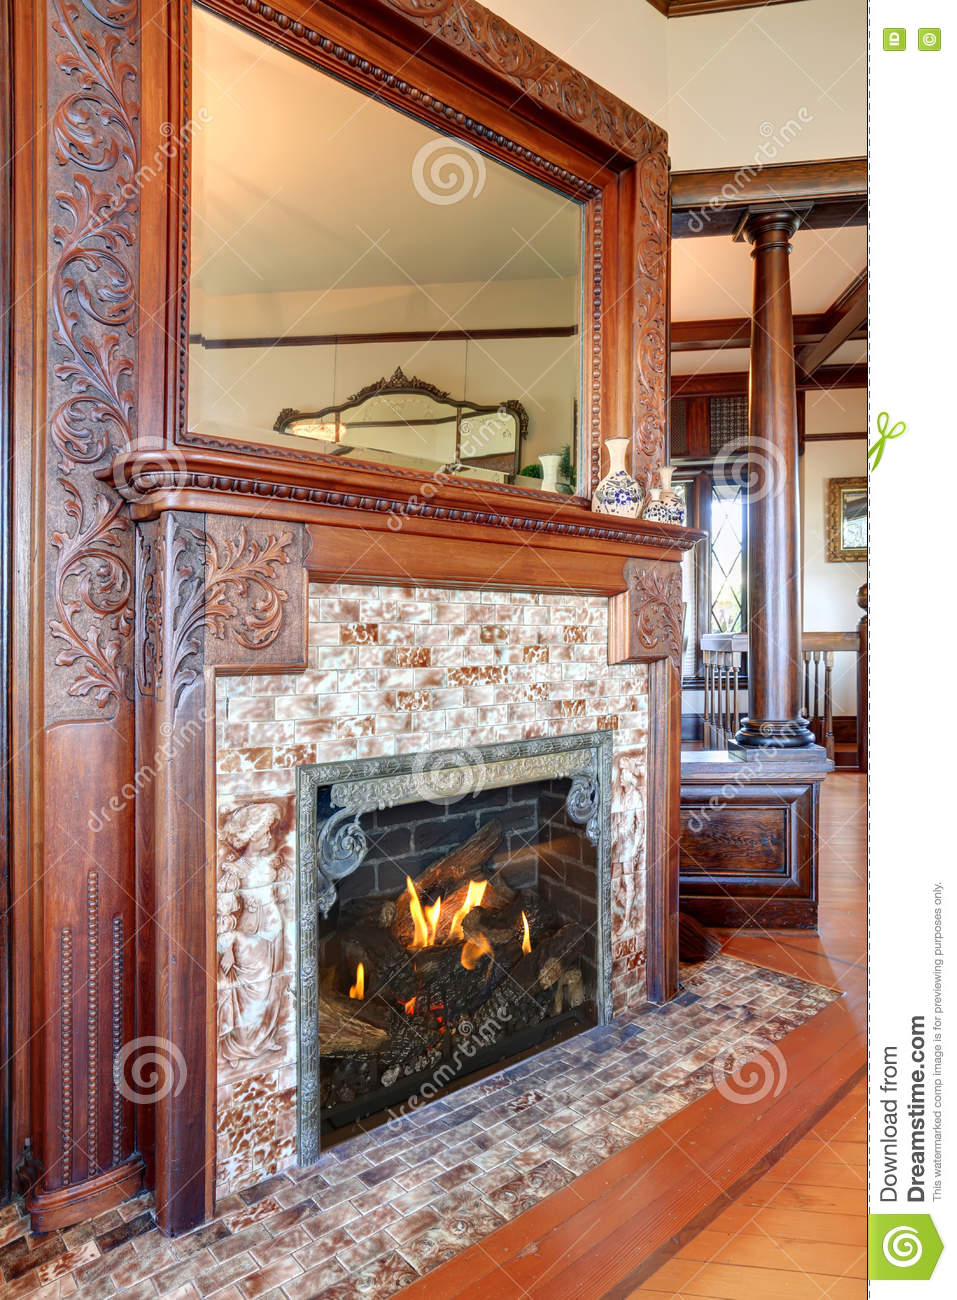 clouse up view of antique fireplace with decorative tile trim stock photo image of building luxury 74393922